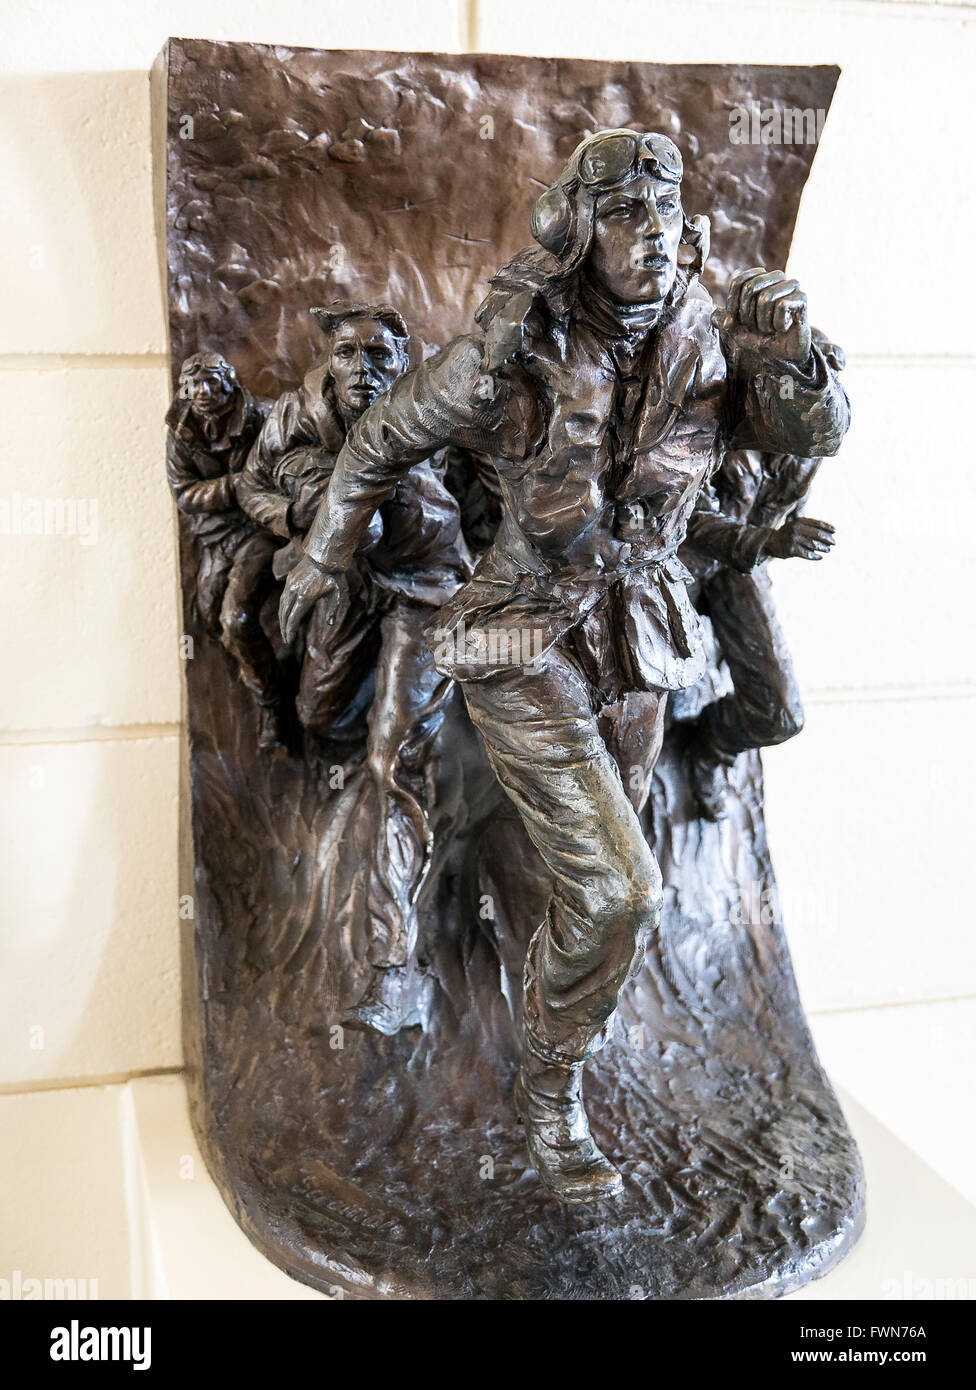 Sculpture showing Battle of Britain RAF pilot running to his aircraft to defend the UK - Stock Image